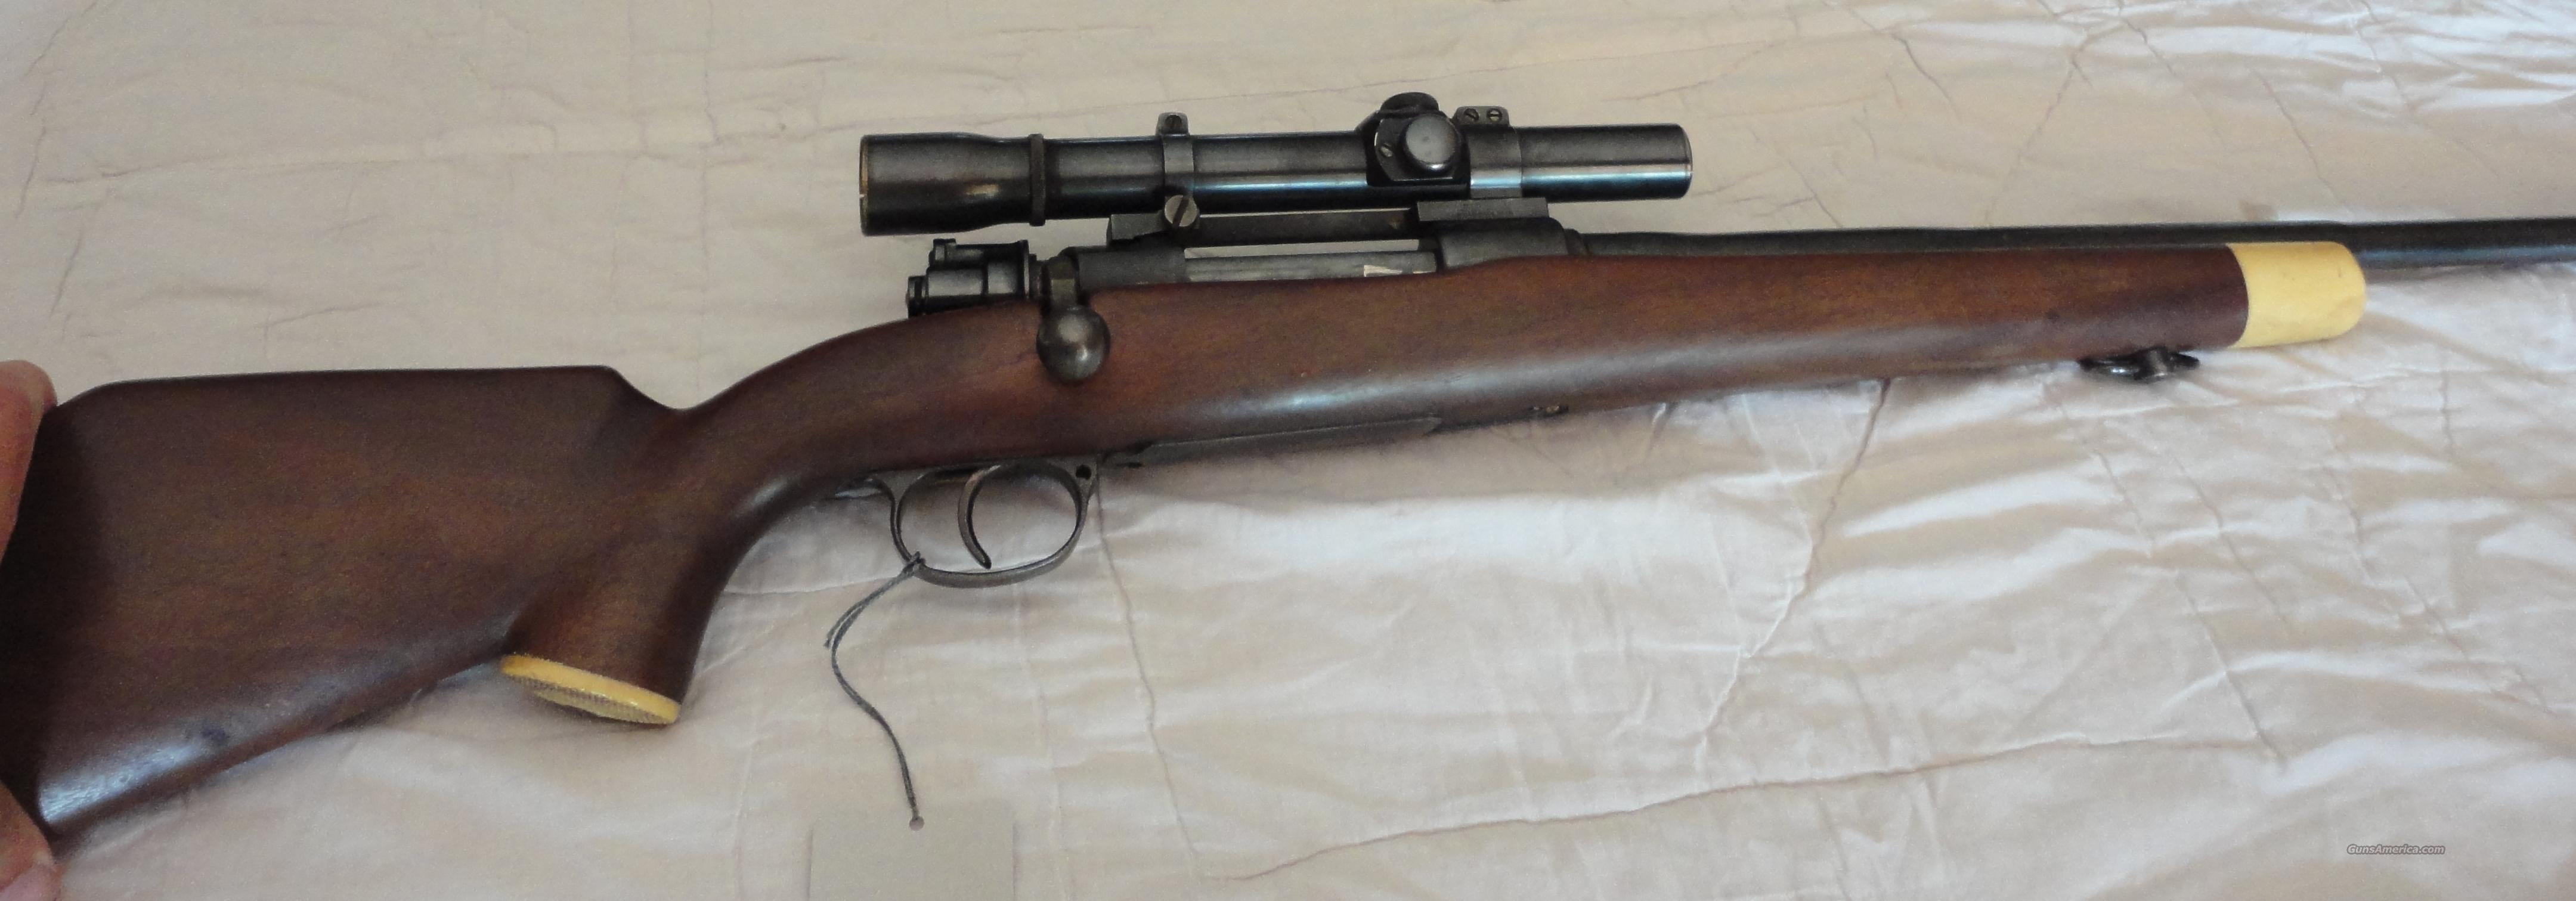 Sporterized German Mauser Std 8 MM  Guns > Rifles > Mauser Rifles > German